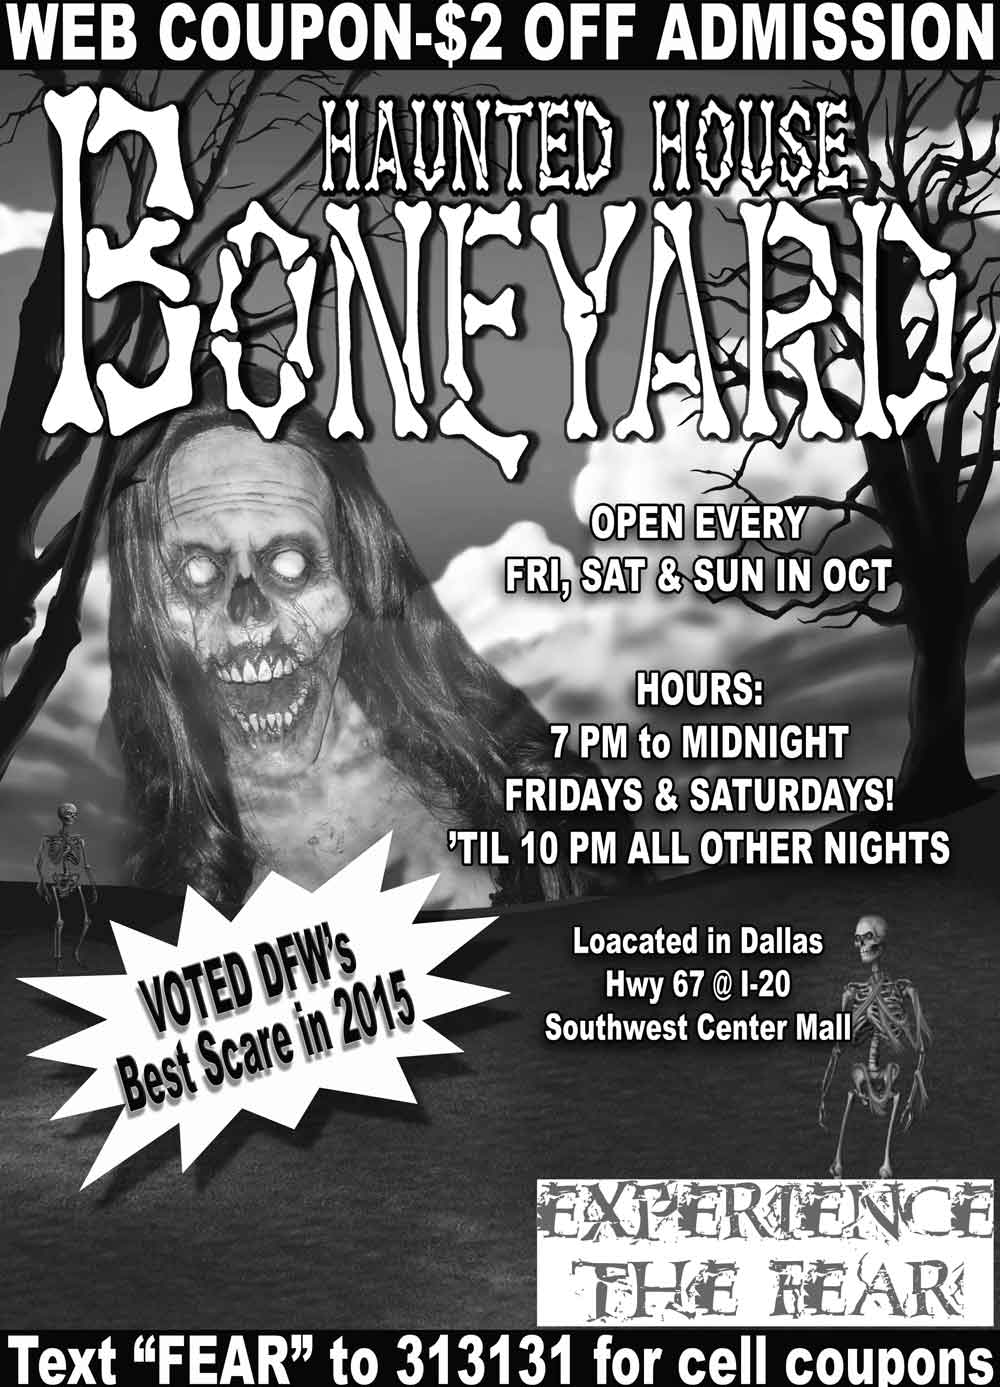 Boneyard Haunted House - 2009 Discount Coupons. text FEAR to 313131 for additional savings sent directly to your cell phone.